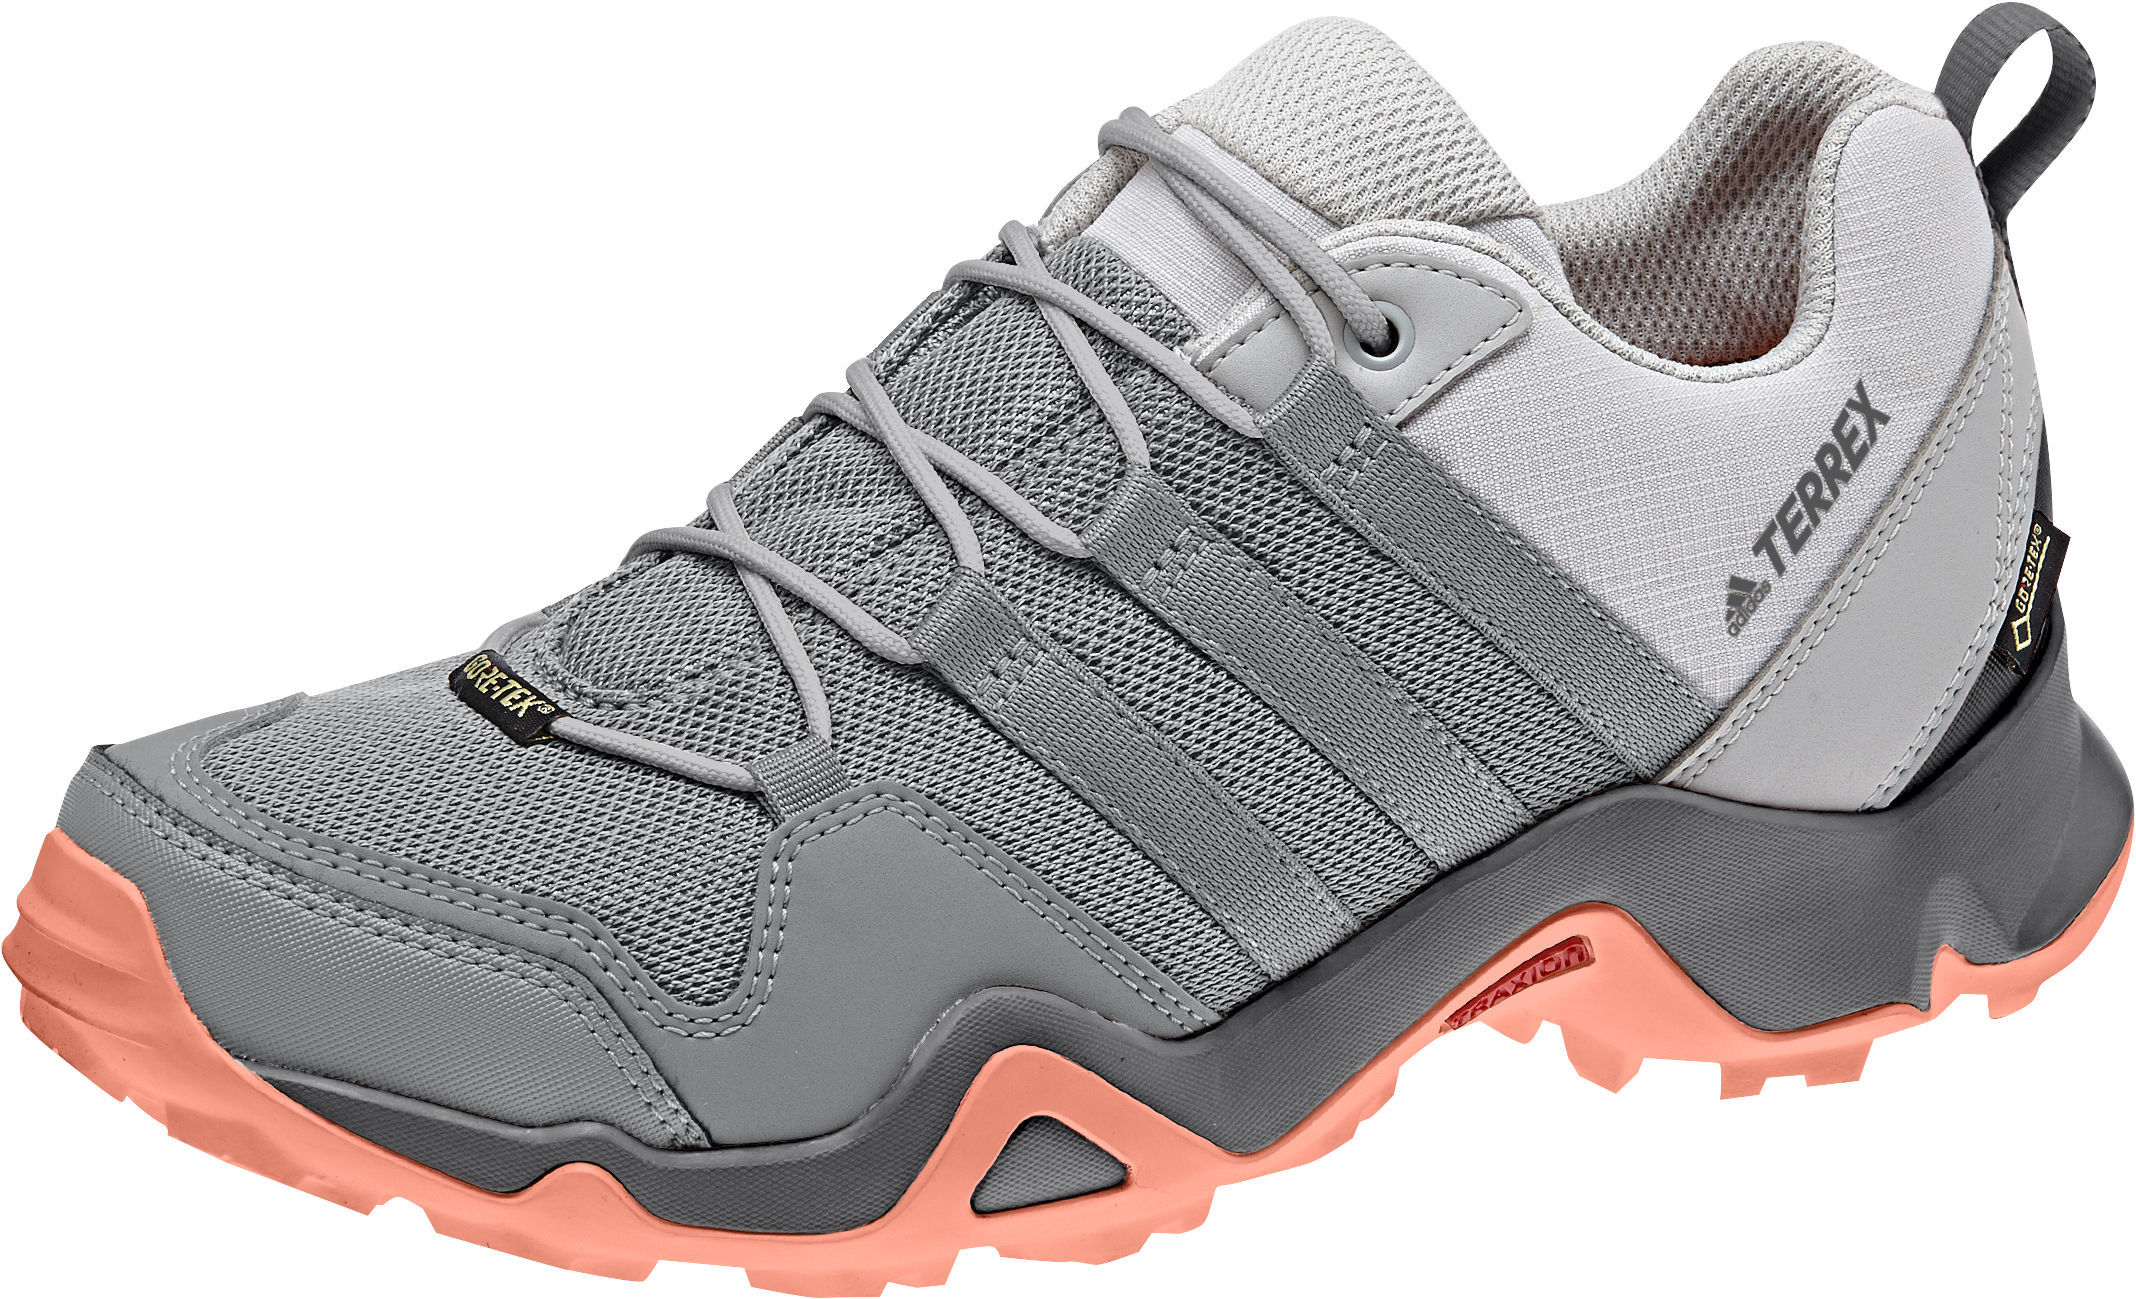 e12b4c34757ff adidas terrex ax2r gtx w review Rate and Review Adidas Outdoor Terrex AX2R GTX  Hiking Shoes - Women s